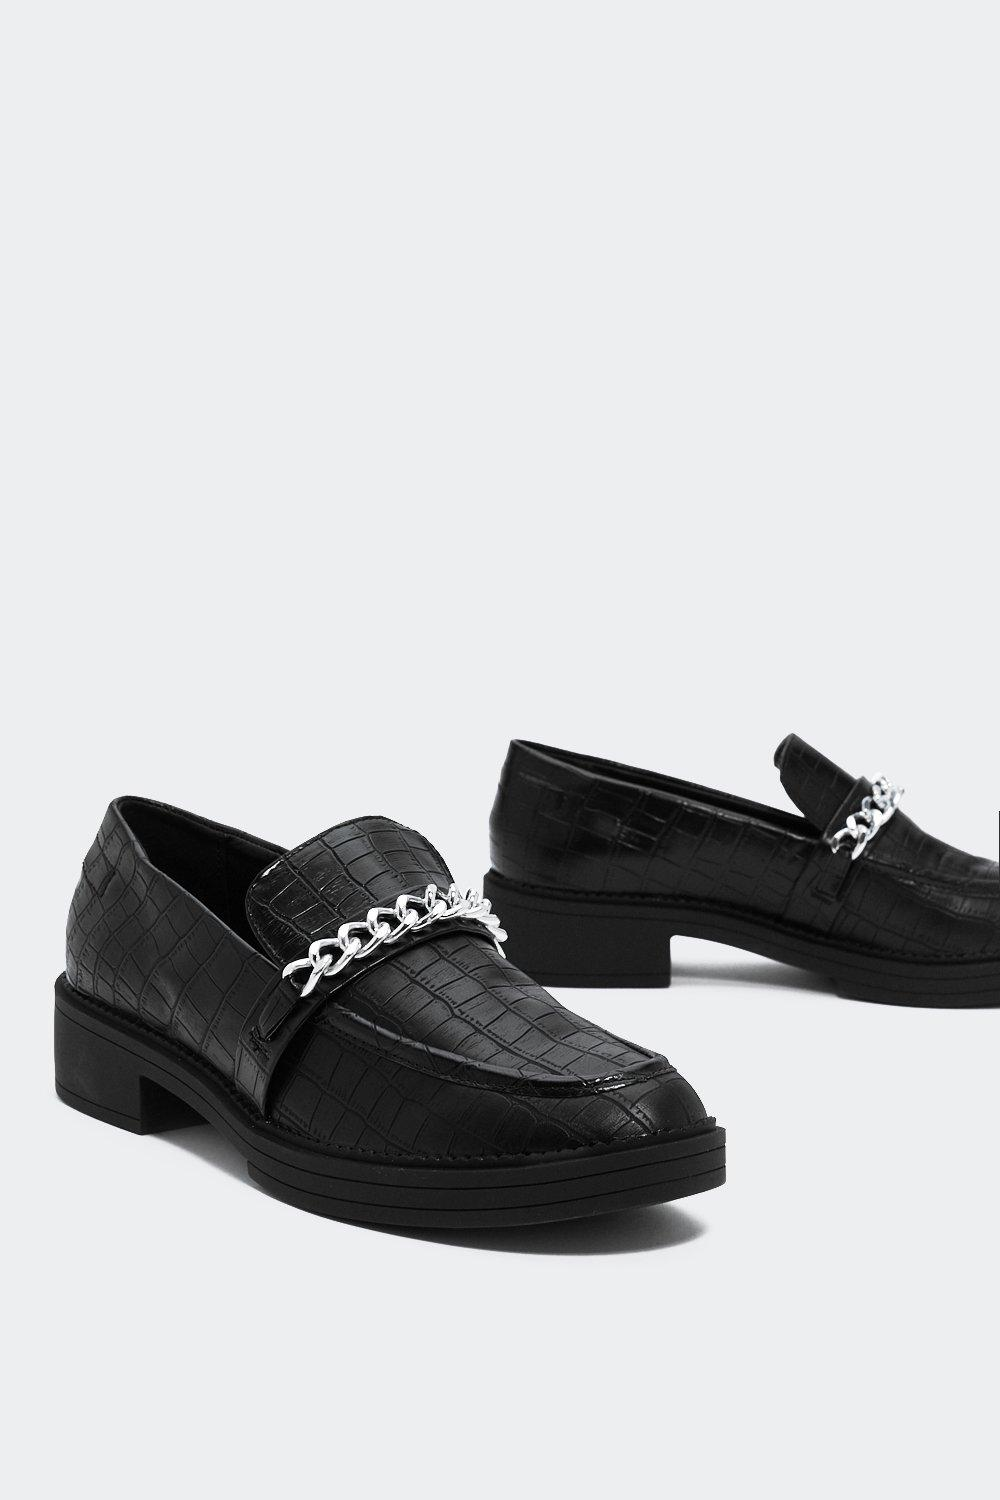 Tramp Stamp Croc Loafer by Nasty Gal